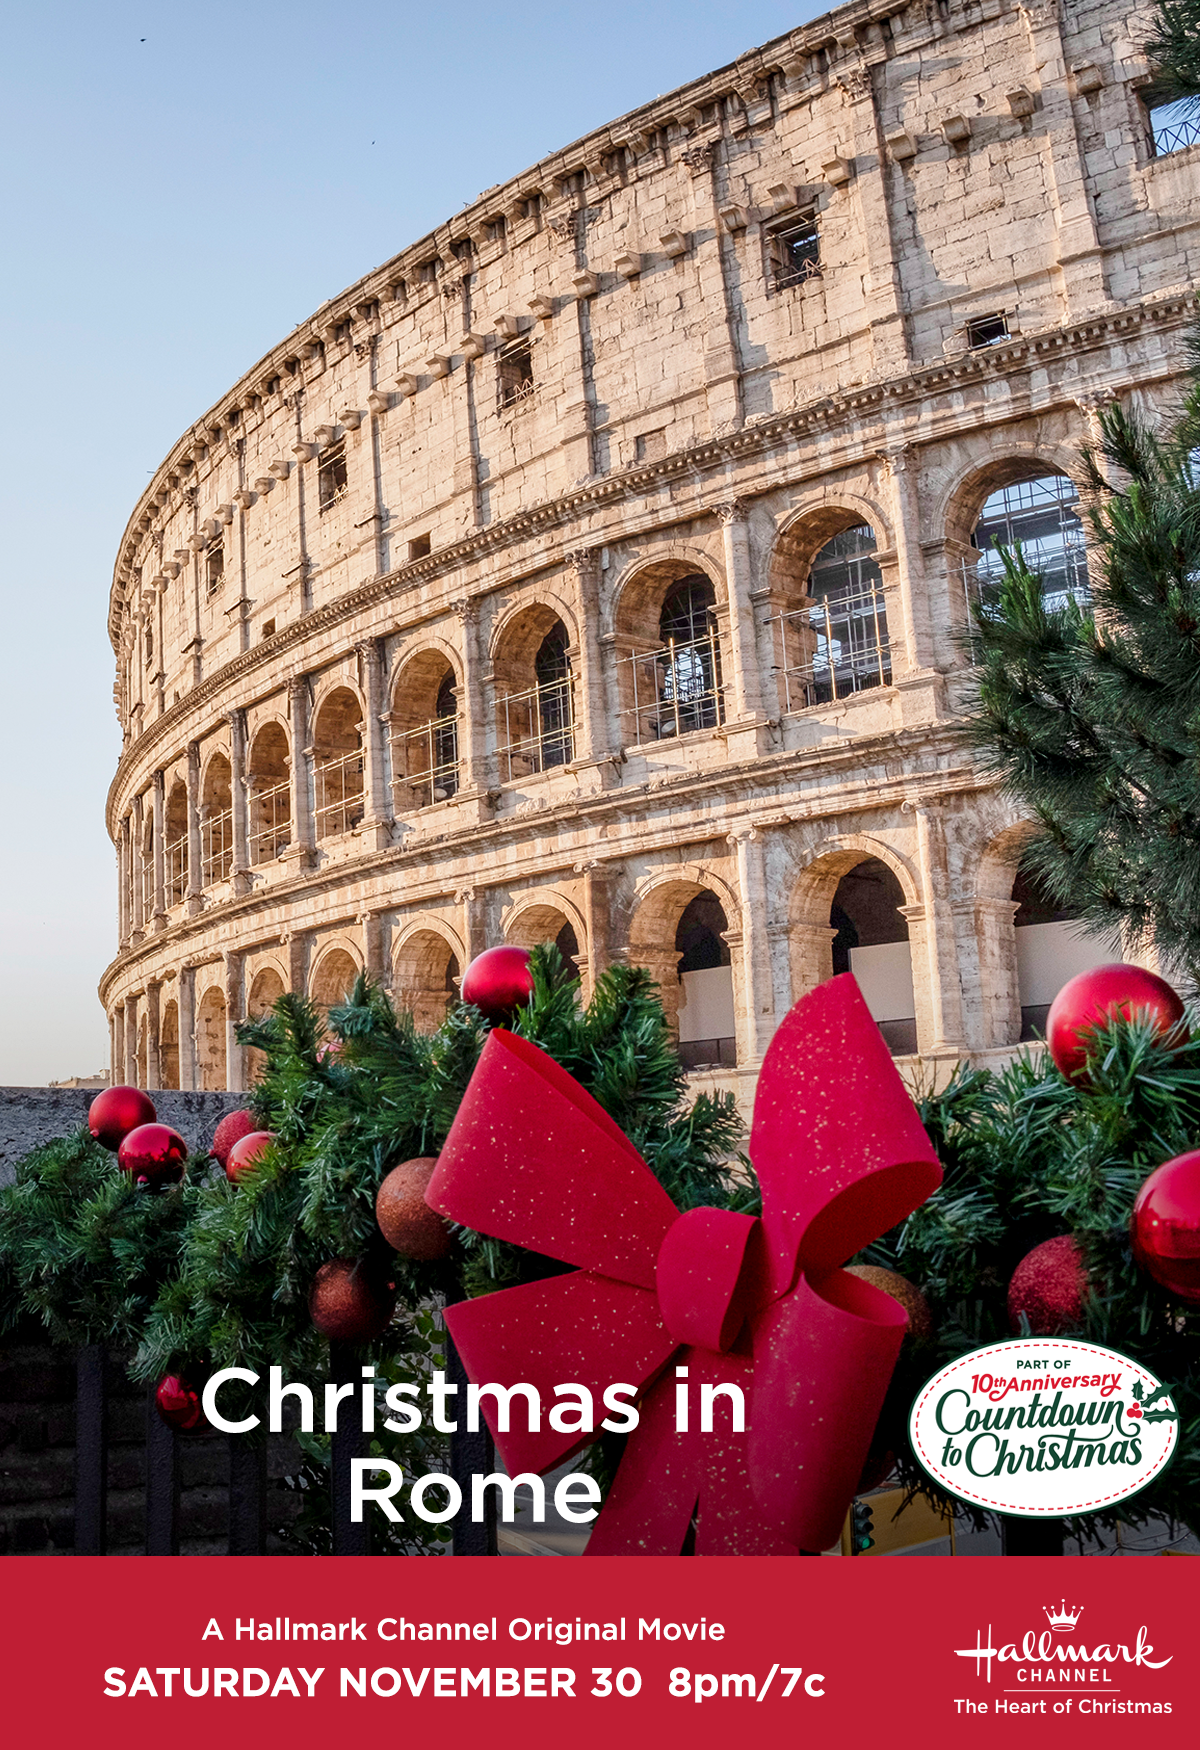 Travel Around The World And Spend Christmas In Rome Without Leaving Your Home Christmasinrome Cou Christmas In Rome Christmas Countdown Hallmark Channel